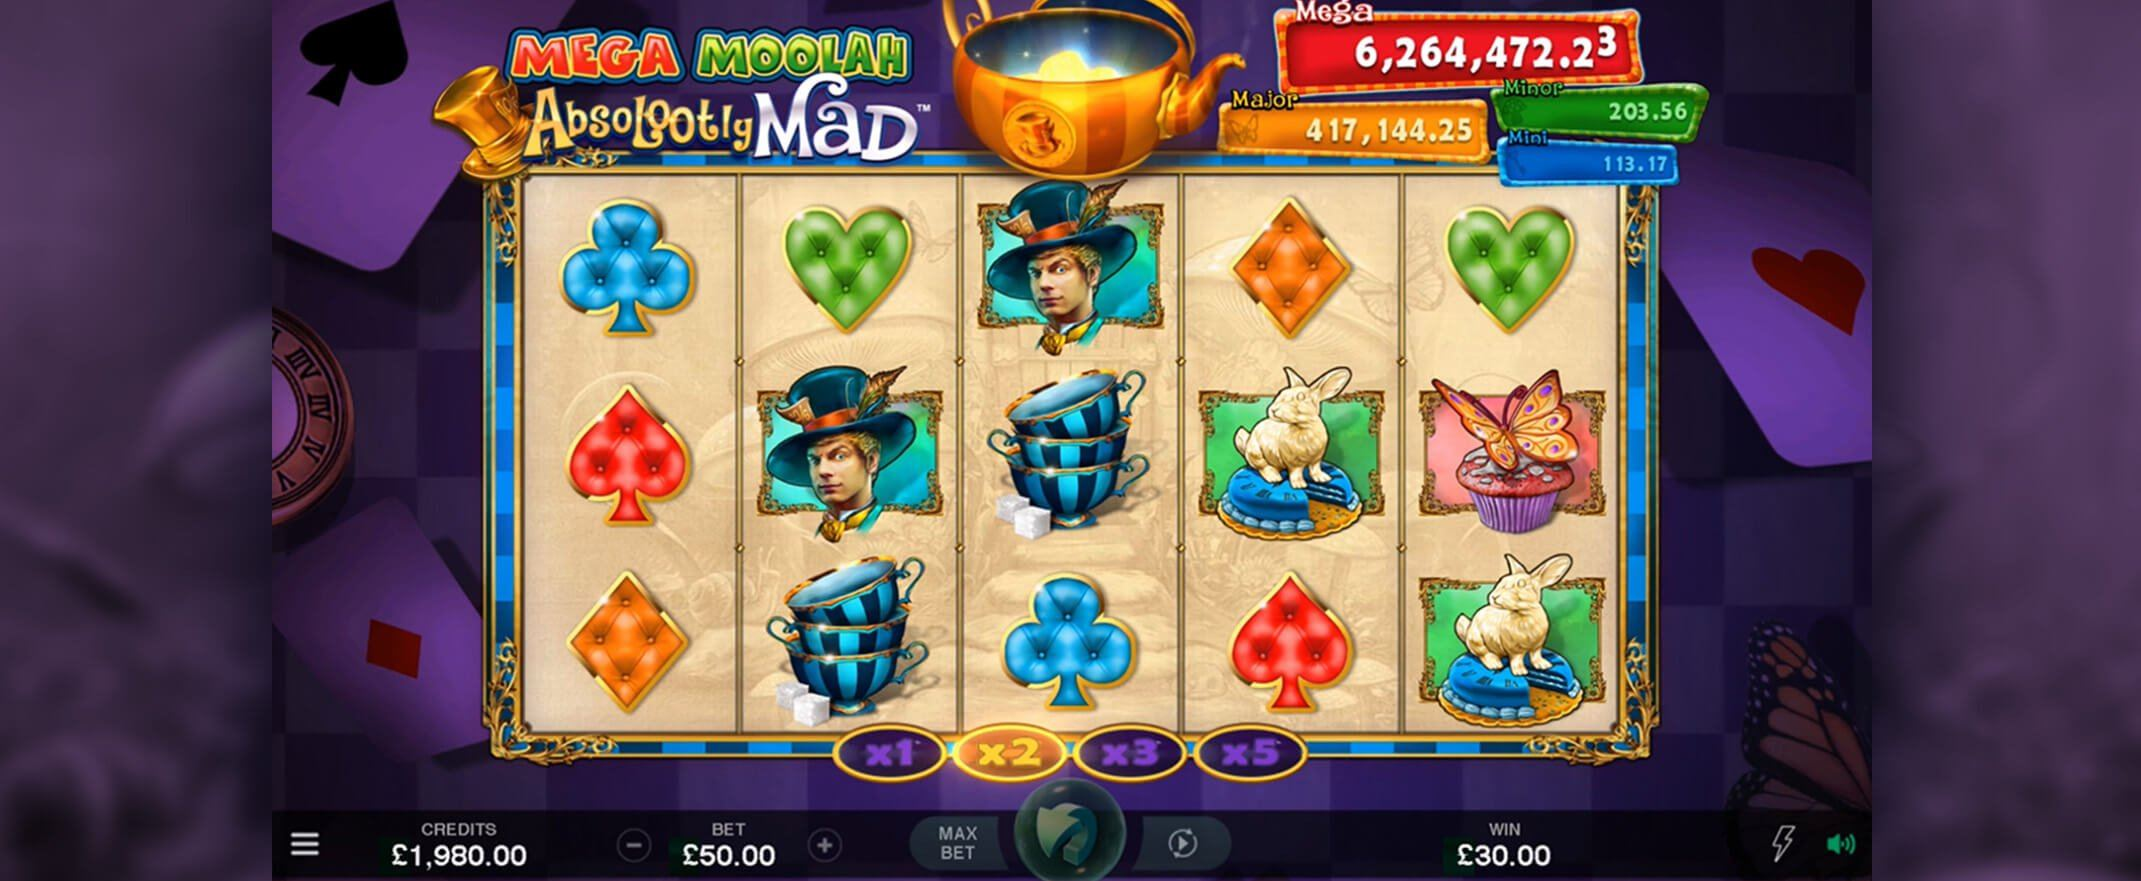 JohnSlots Absolootly Mad Mega Moolah Slot